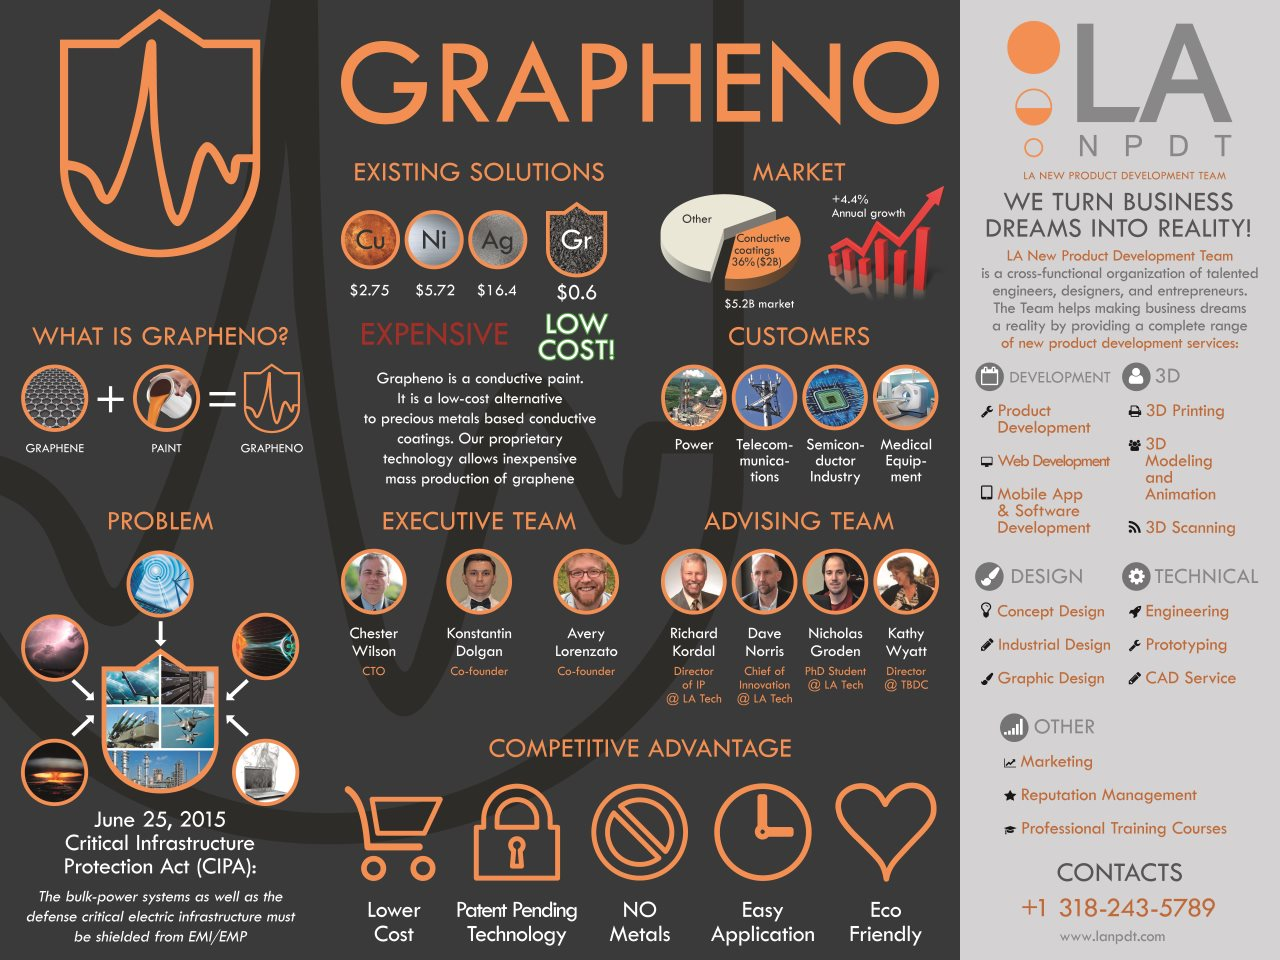 Louisiana Start Up, Grapheno, Now Seeking Partners